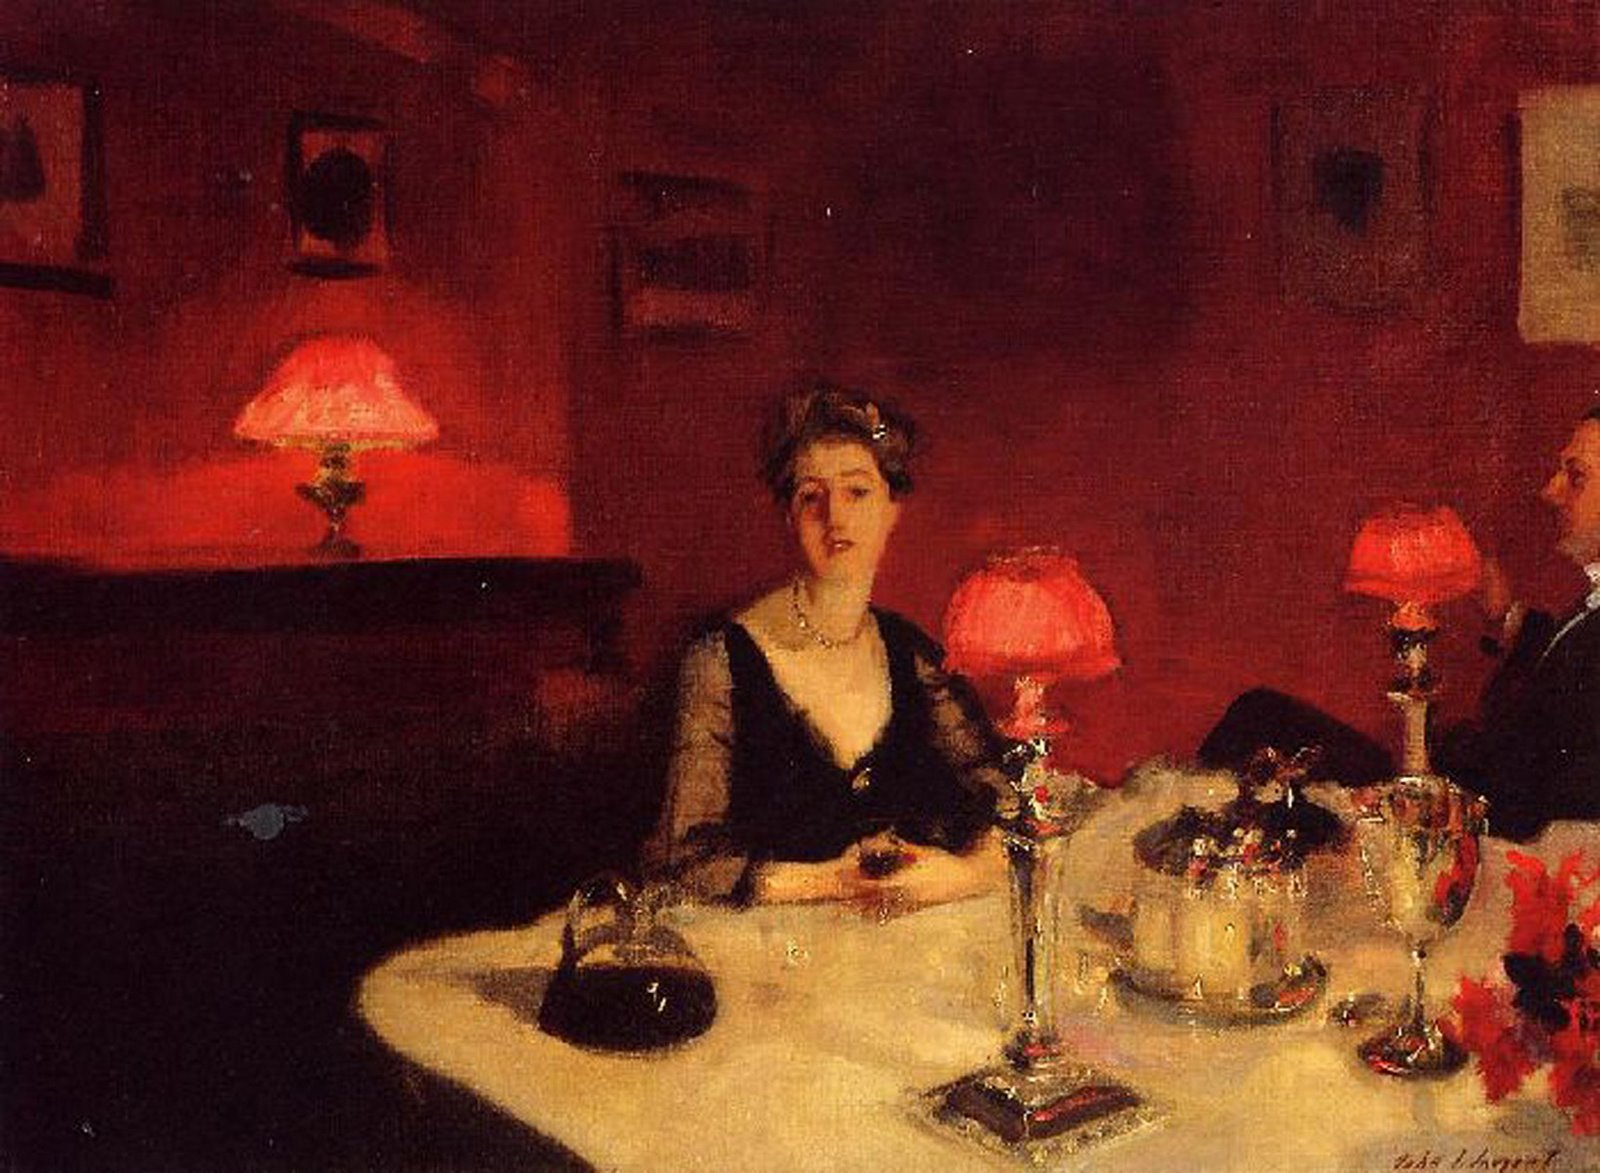 Dinner Table at Night - John Singer Sargent